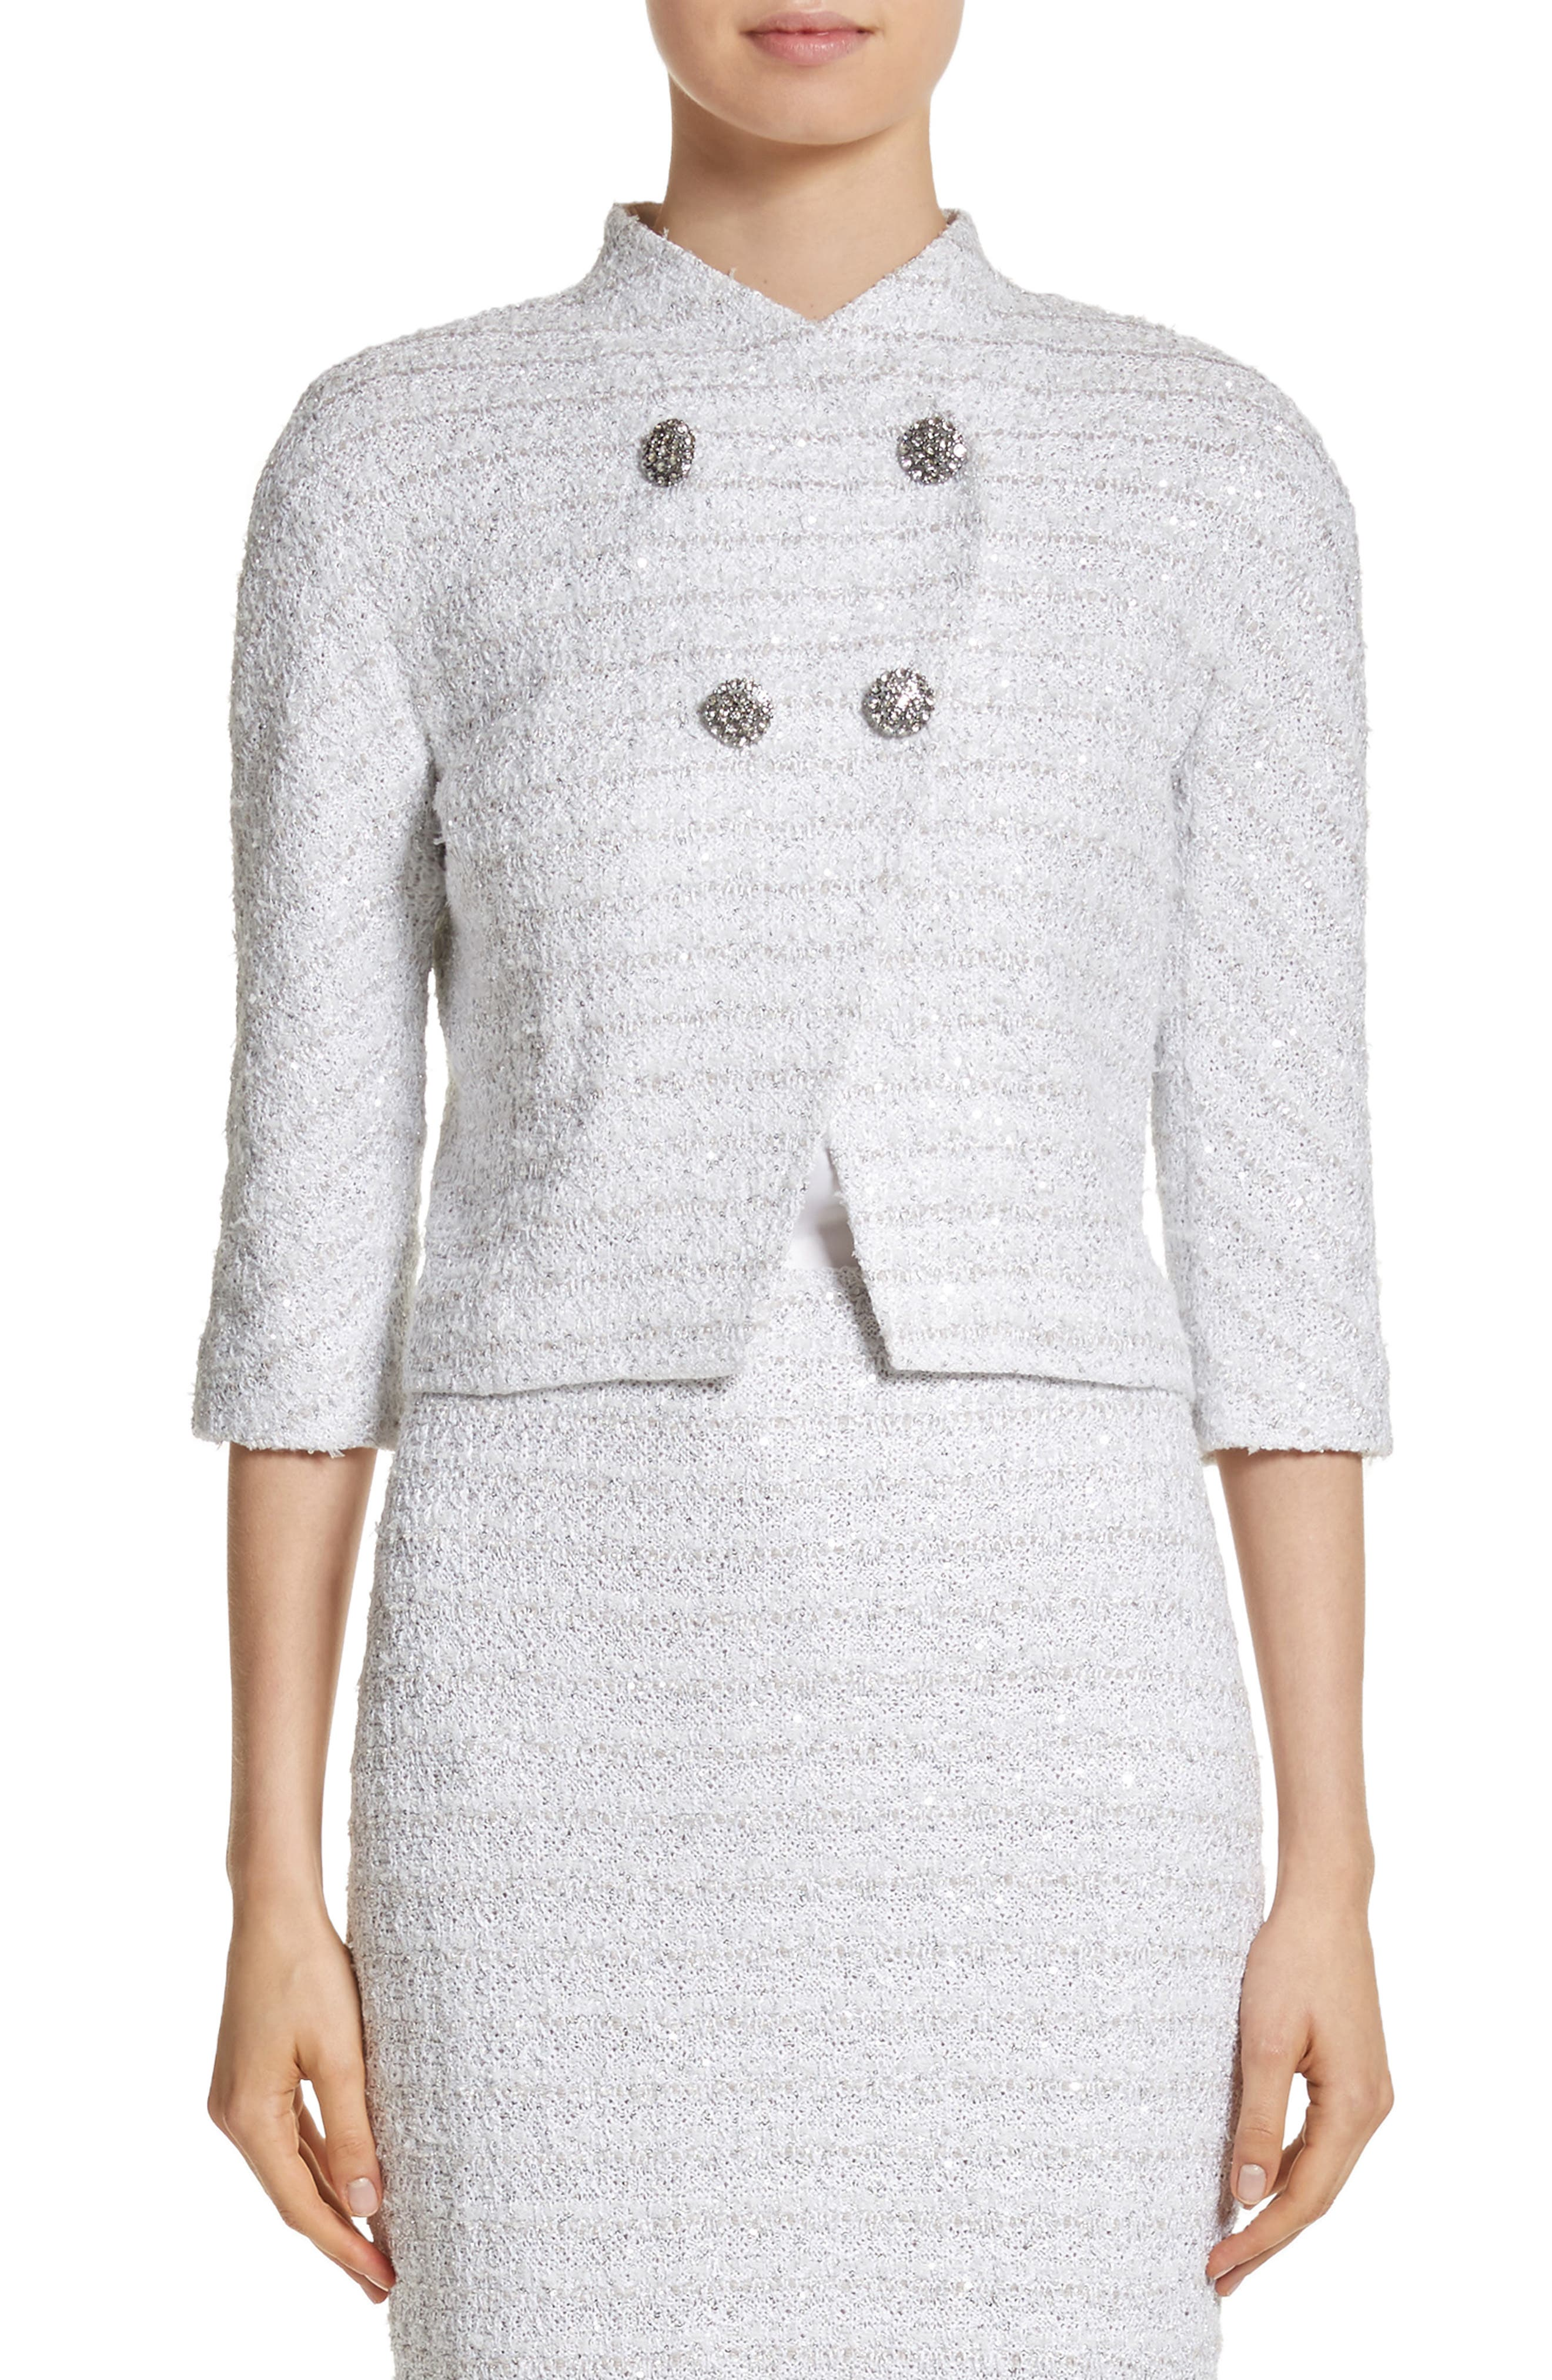 Frosted Metallic Tweed Jacket,                         Main,                         color, Bianco Multi